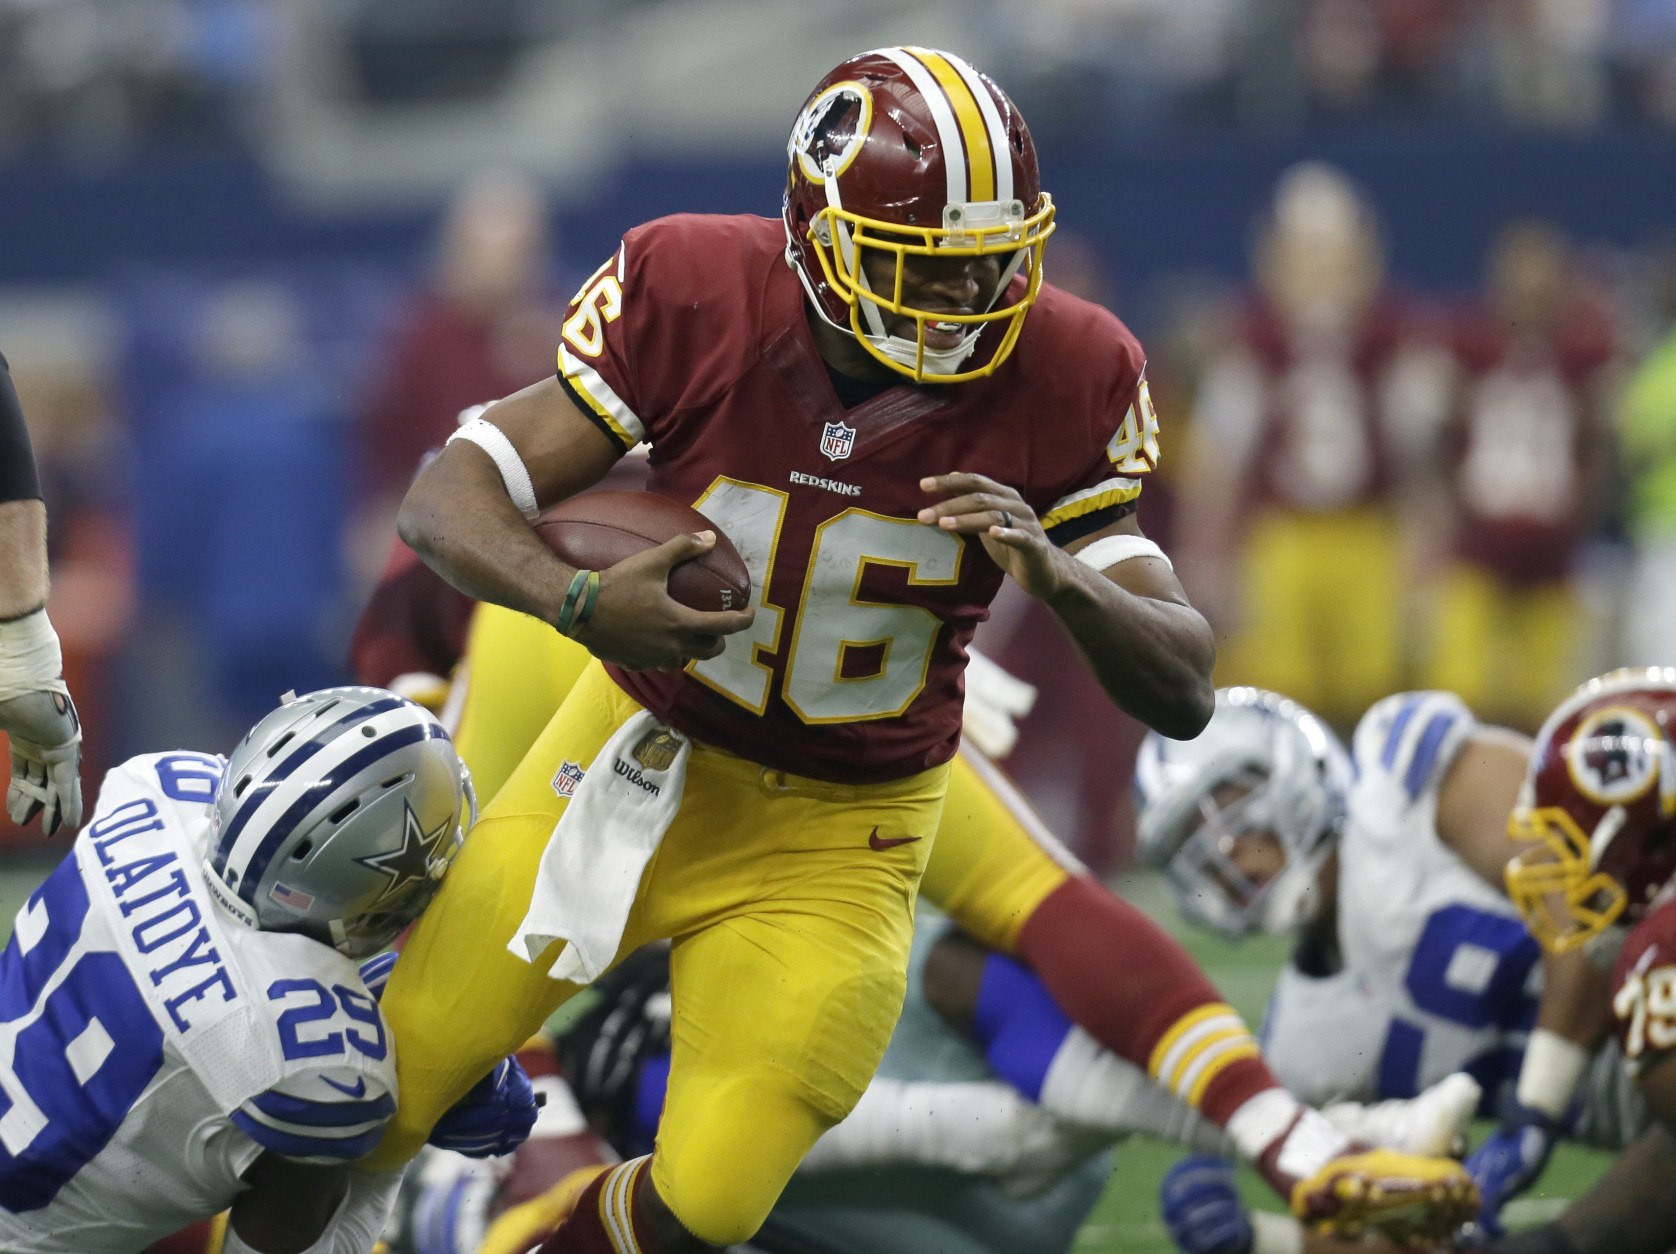 Cheap NFL Jerseys - Cousins has 'perfect' tuneup as Redskins top Cowboys 34|23 | WTOP